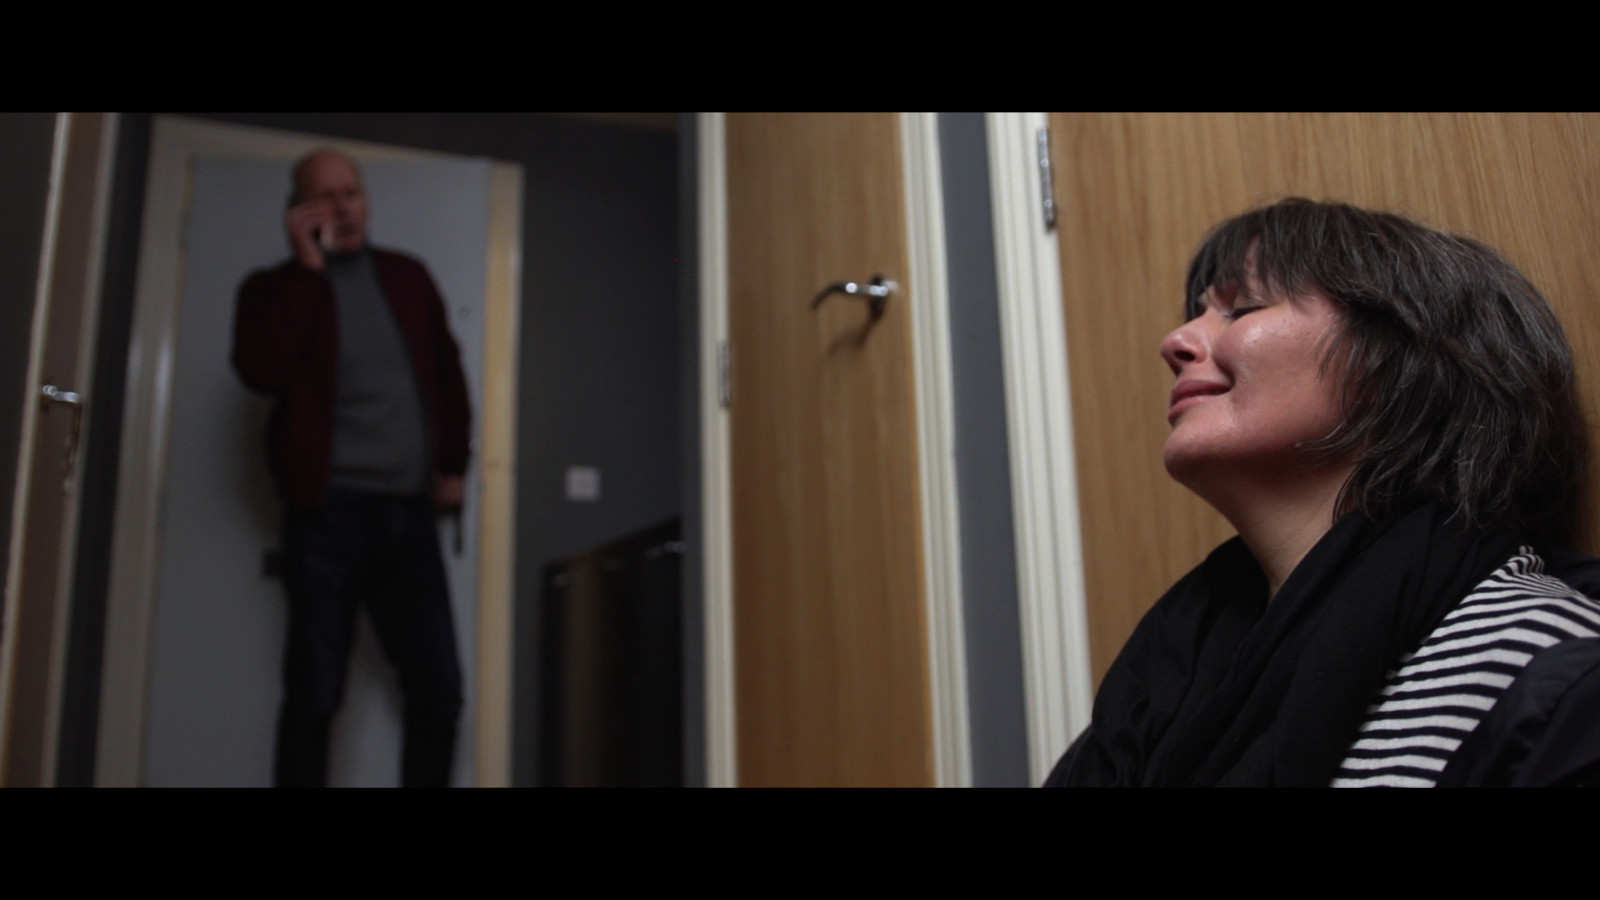 Still from Fresh Media Productions short film Trapped, featuring actors Anna Livingstone and Philip Gill